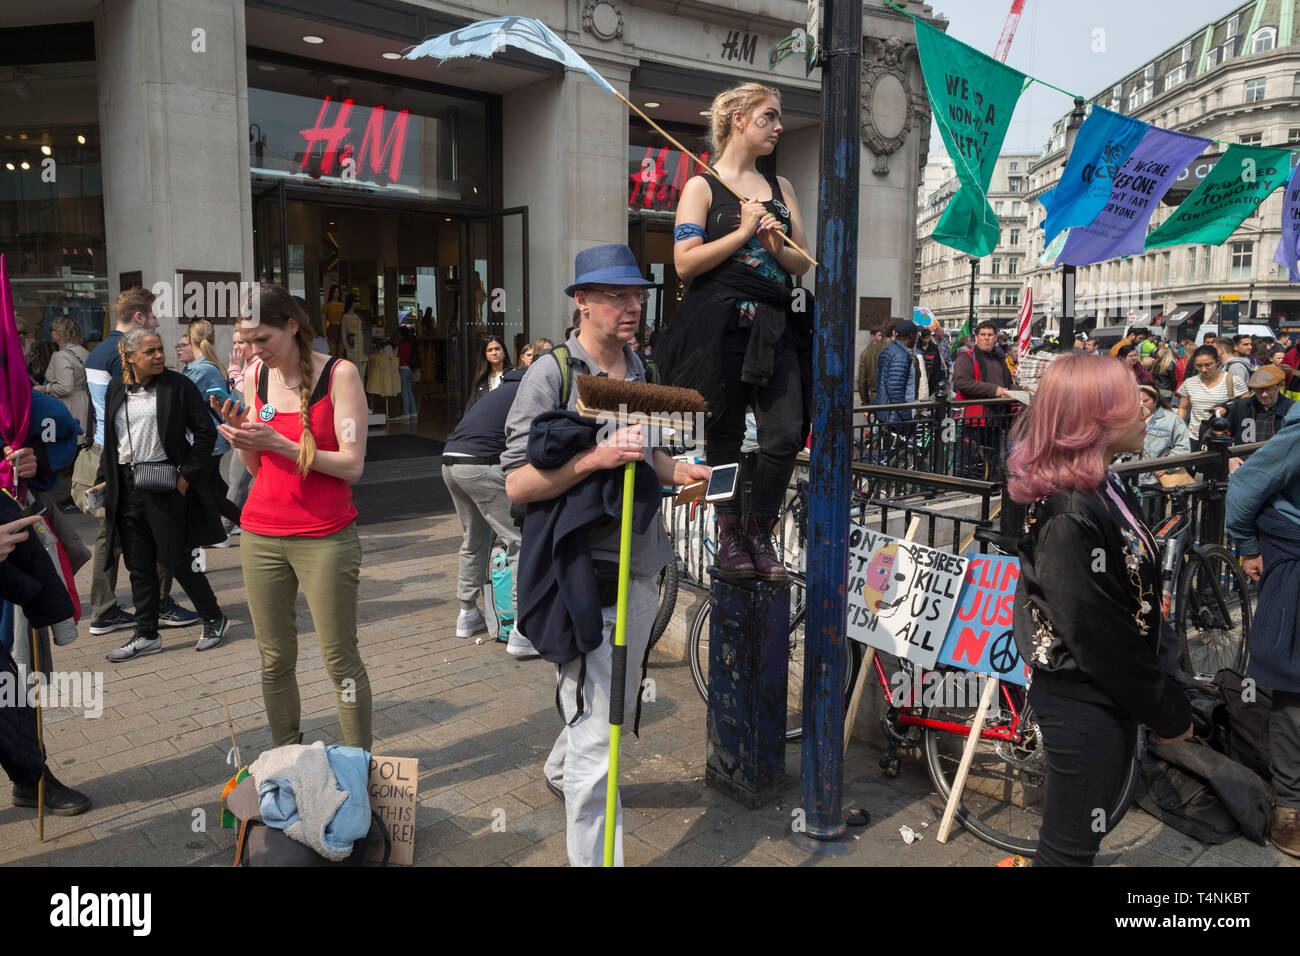 Activists with Extinction Rebellion protest about climate change in a blocked-off Oxford Circus, on 17th April 2019, in London, England. Stock Photo